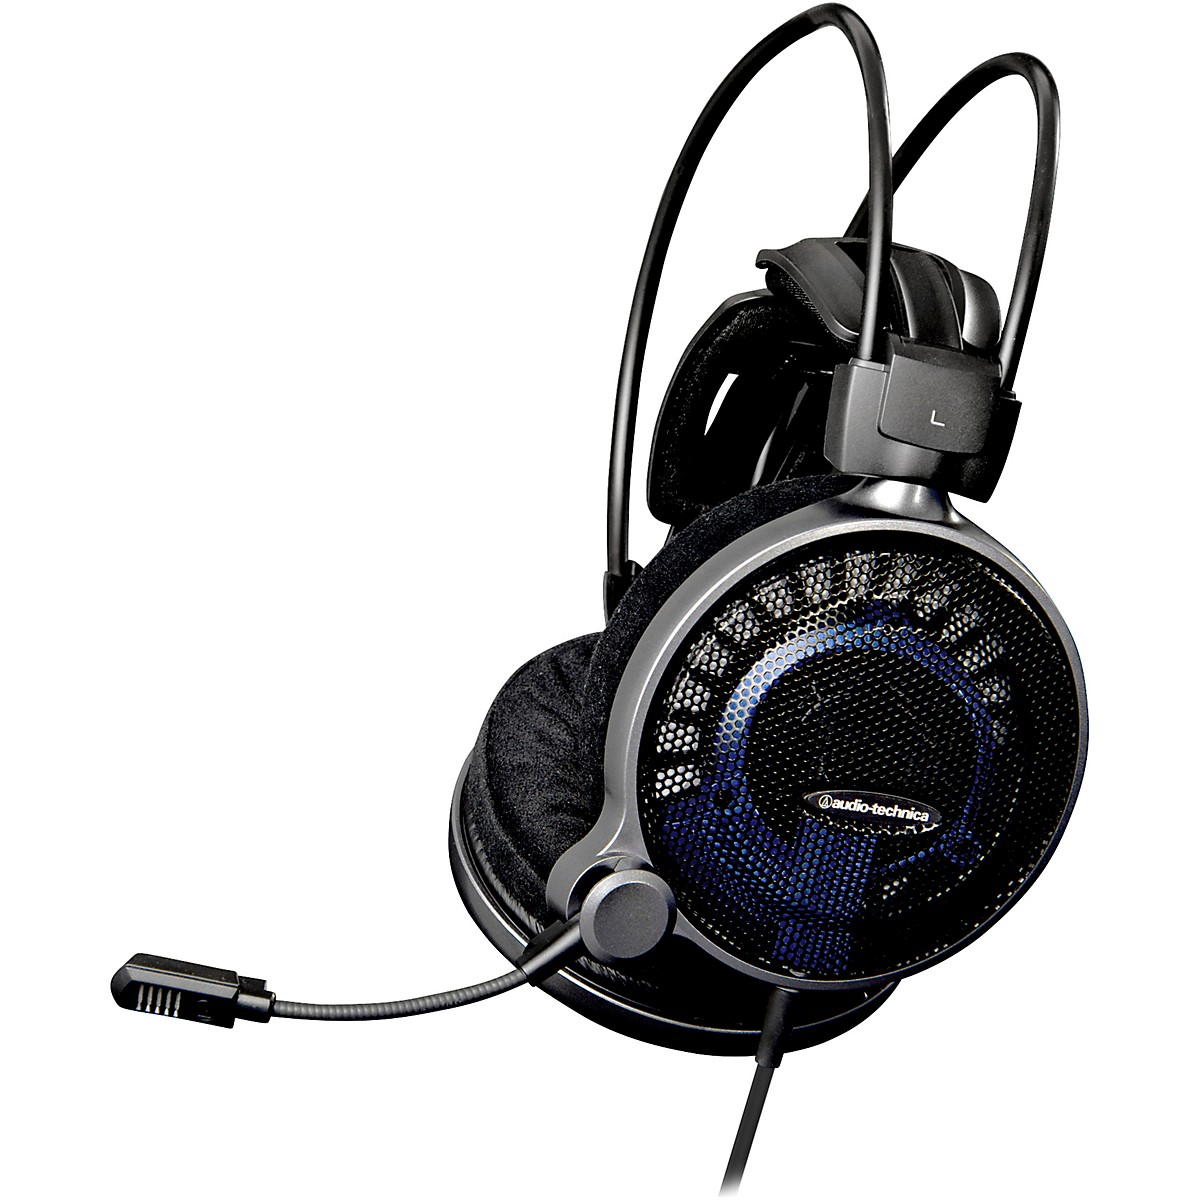 Audio Technica Audio Technica ATH ADG1X Open Back Pro Gaming Headset